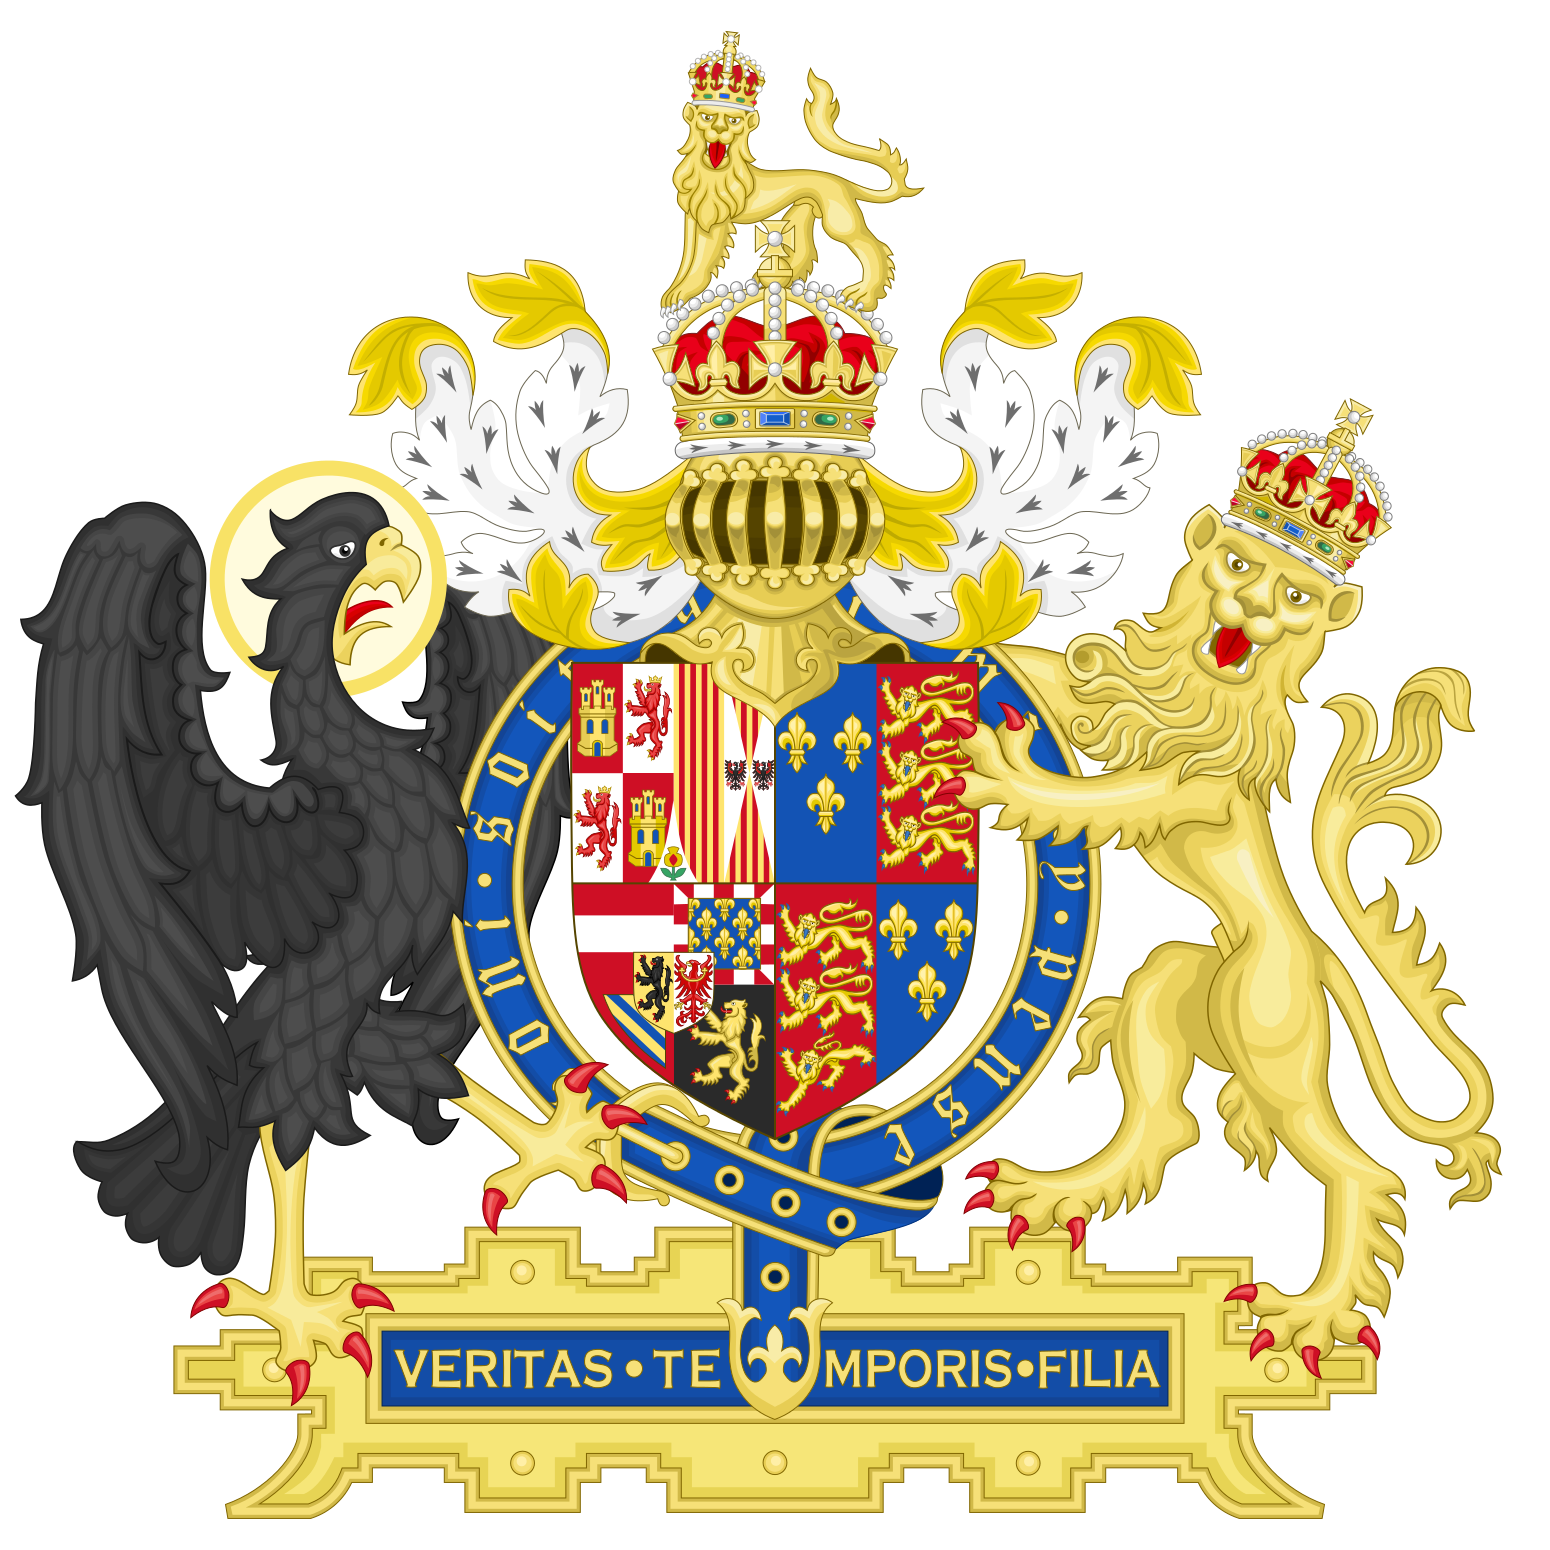 Coat of arms england. Shell clipart heraldic scallop